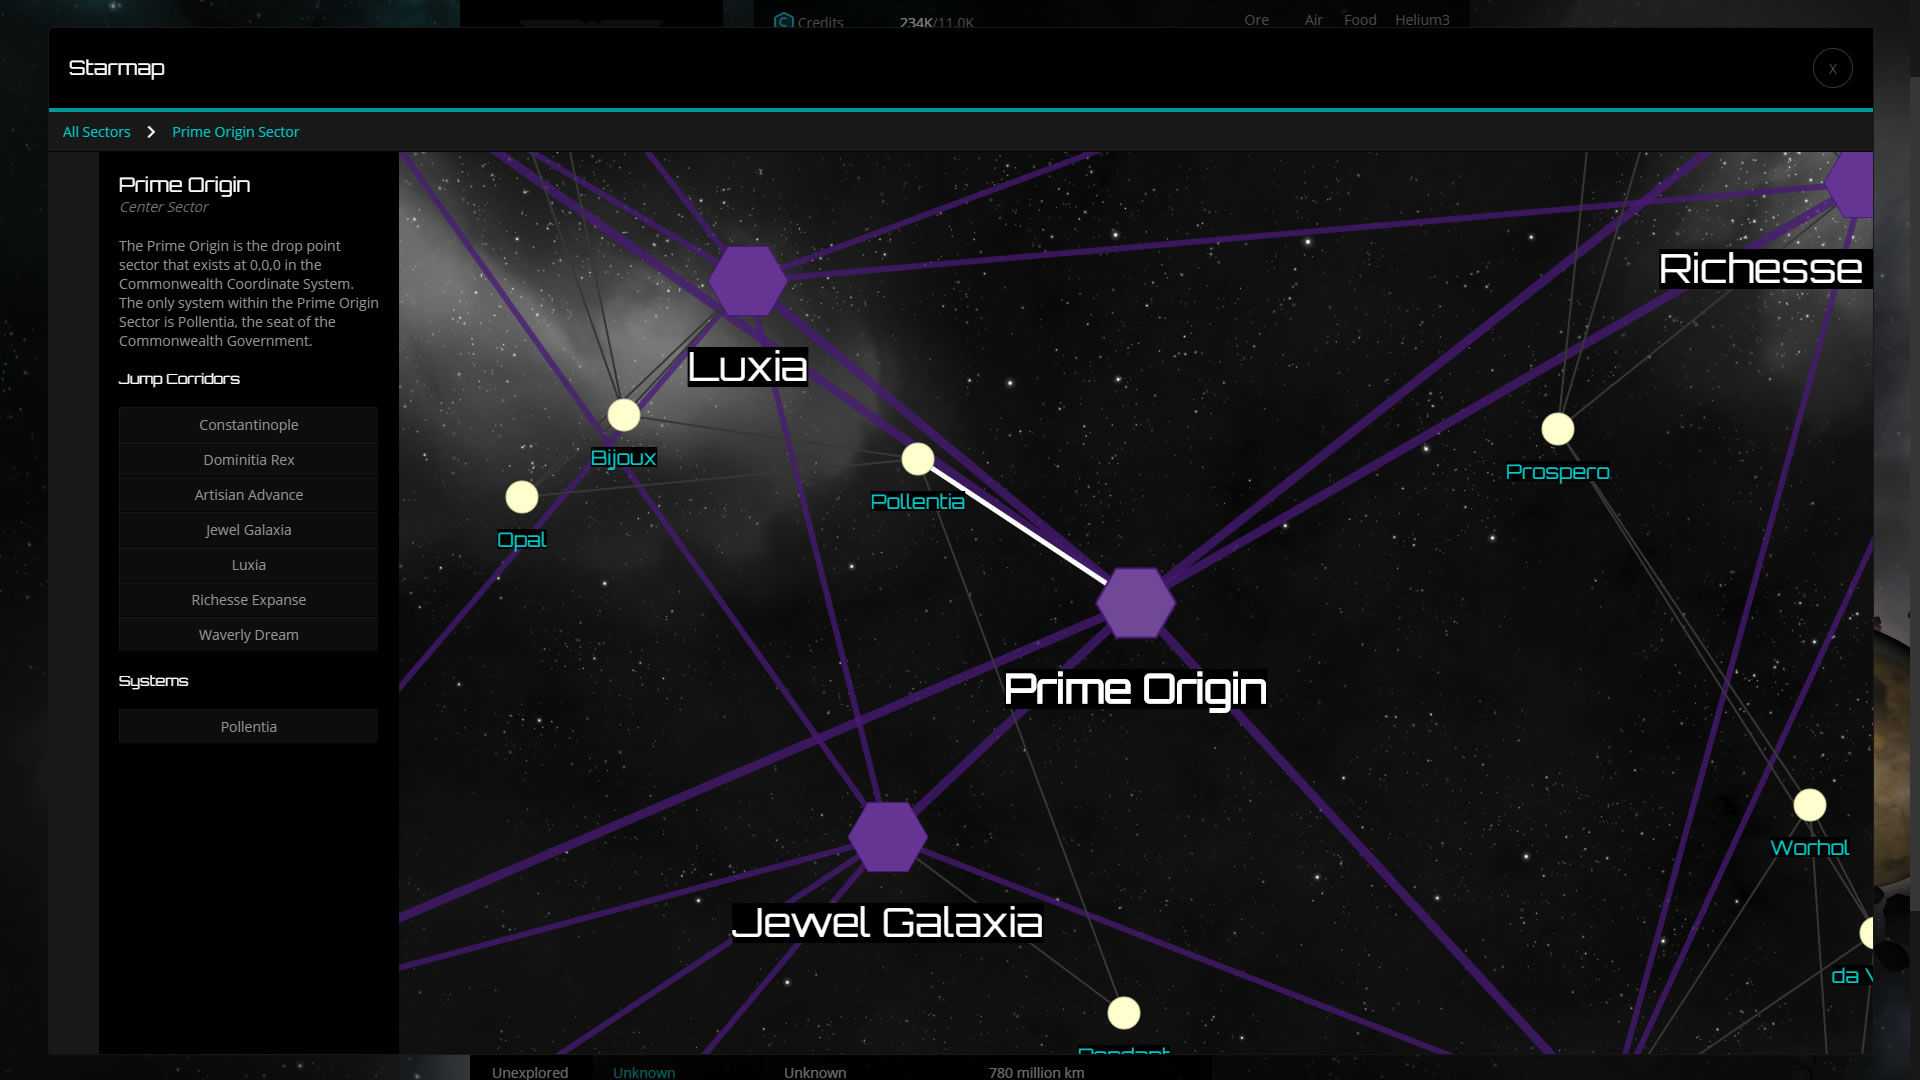 The sector view of the starmap.